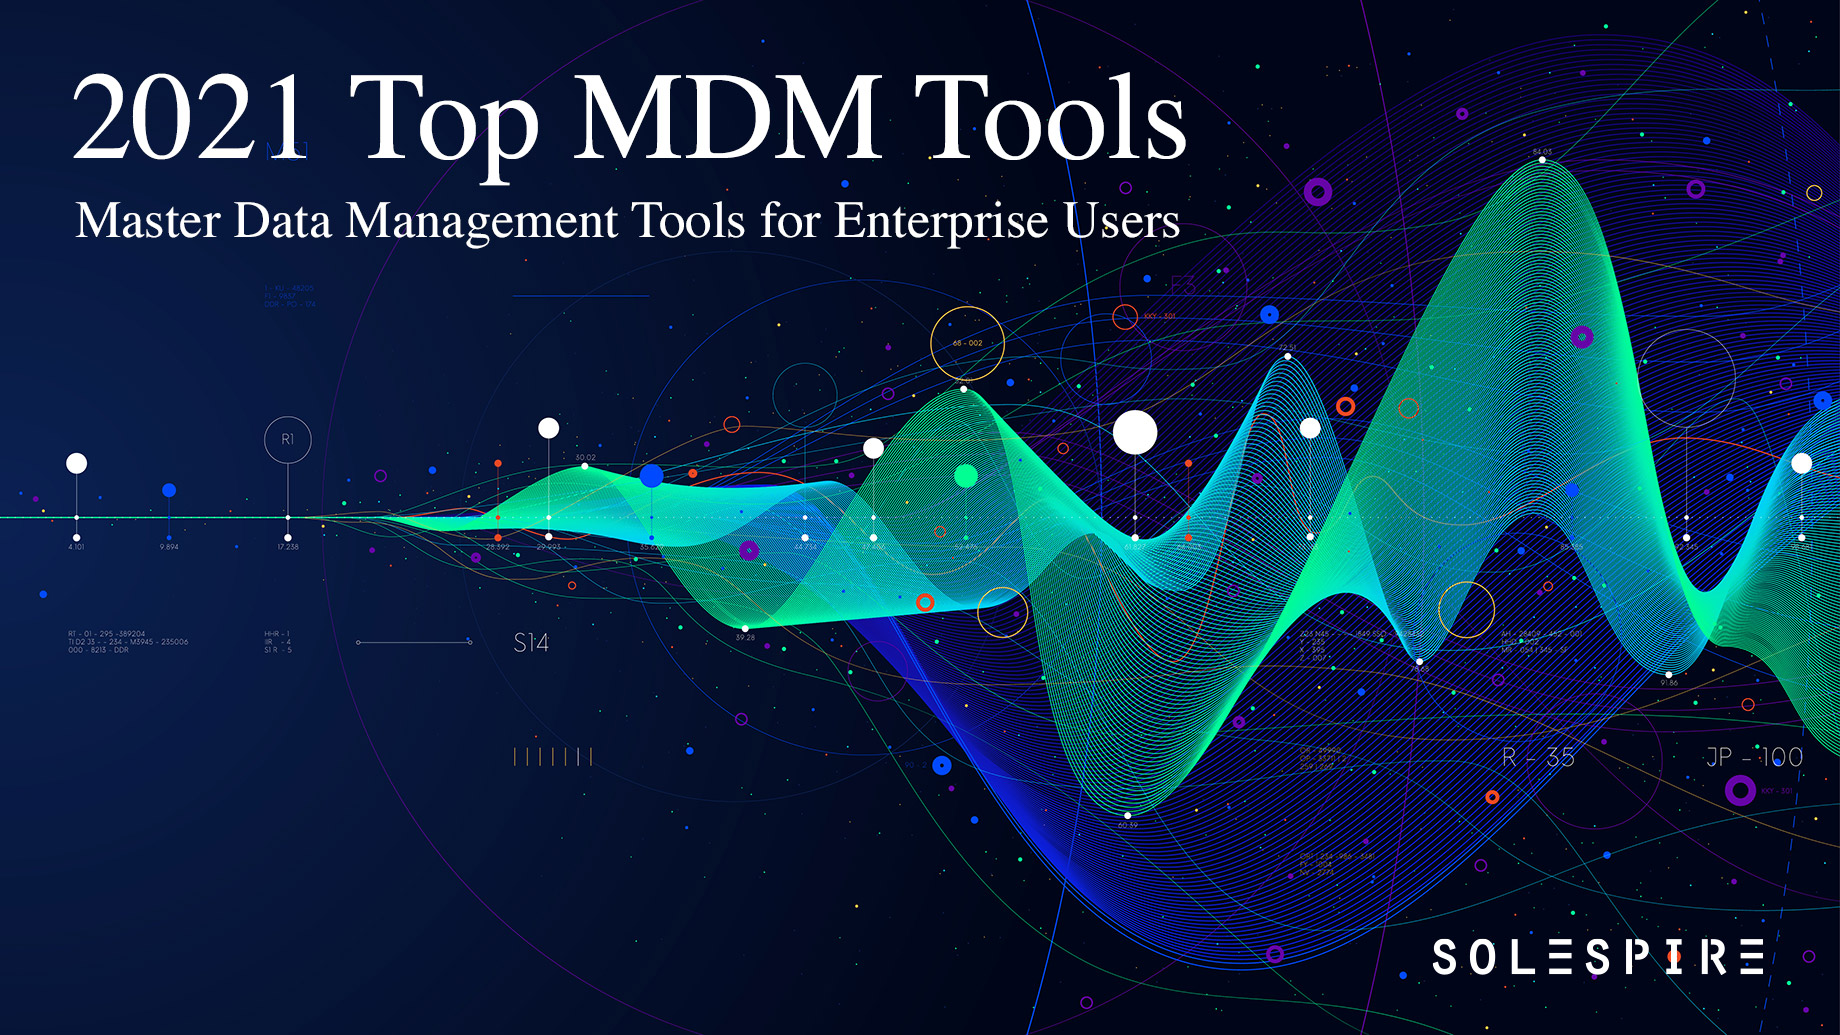 10 Best-in-Class Master Data Management Tools for Enterprise Users in 2021